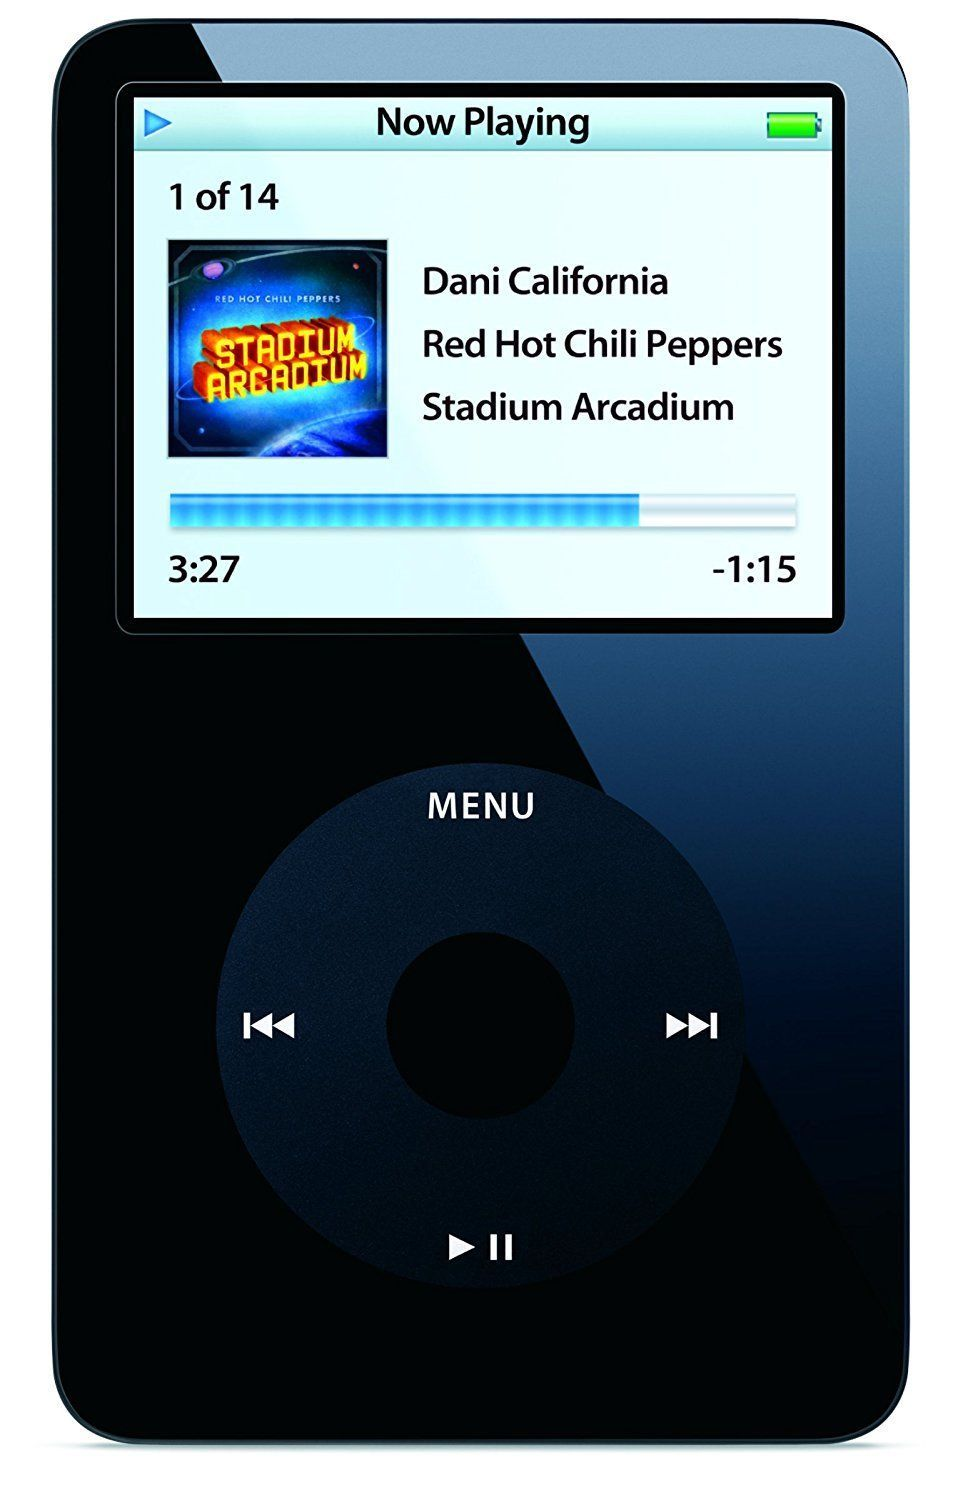 Apple iPod Classic 5th Generation 30GB - Black (Refurbished)